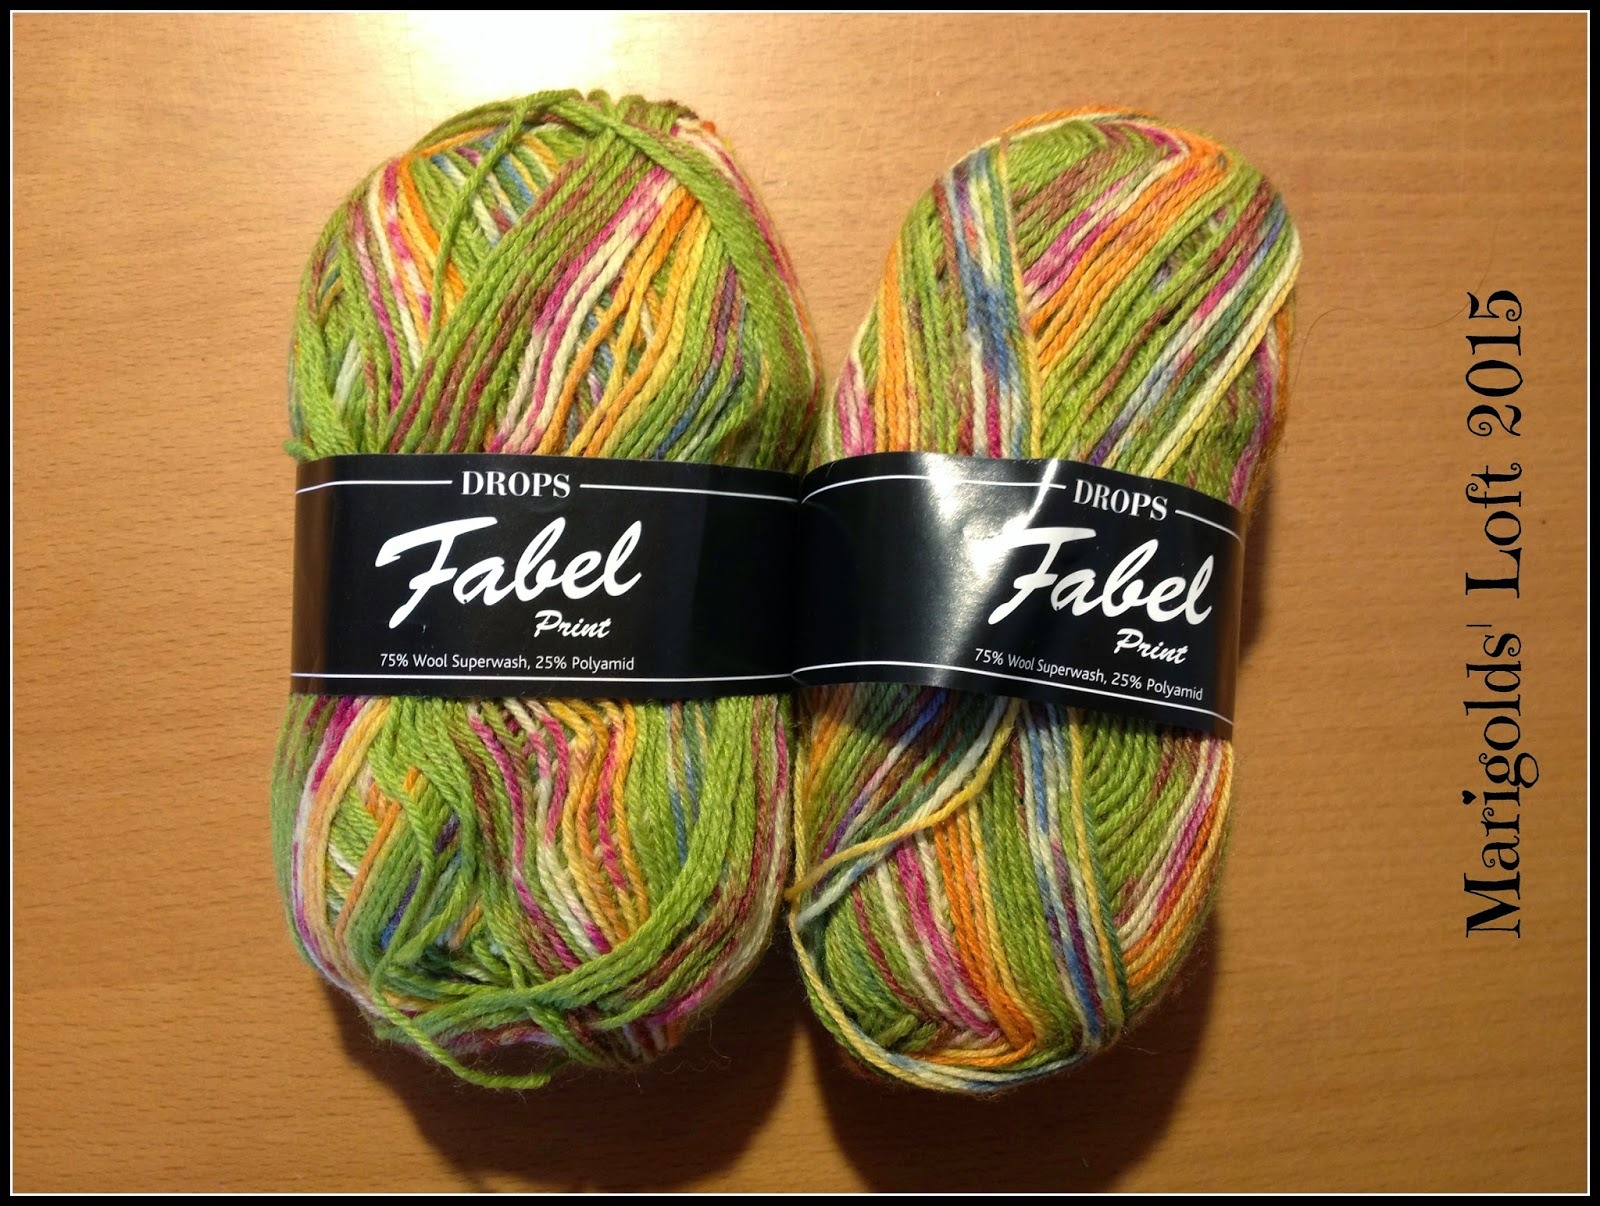 Drops Fabel Socks